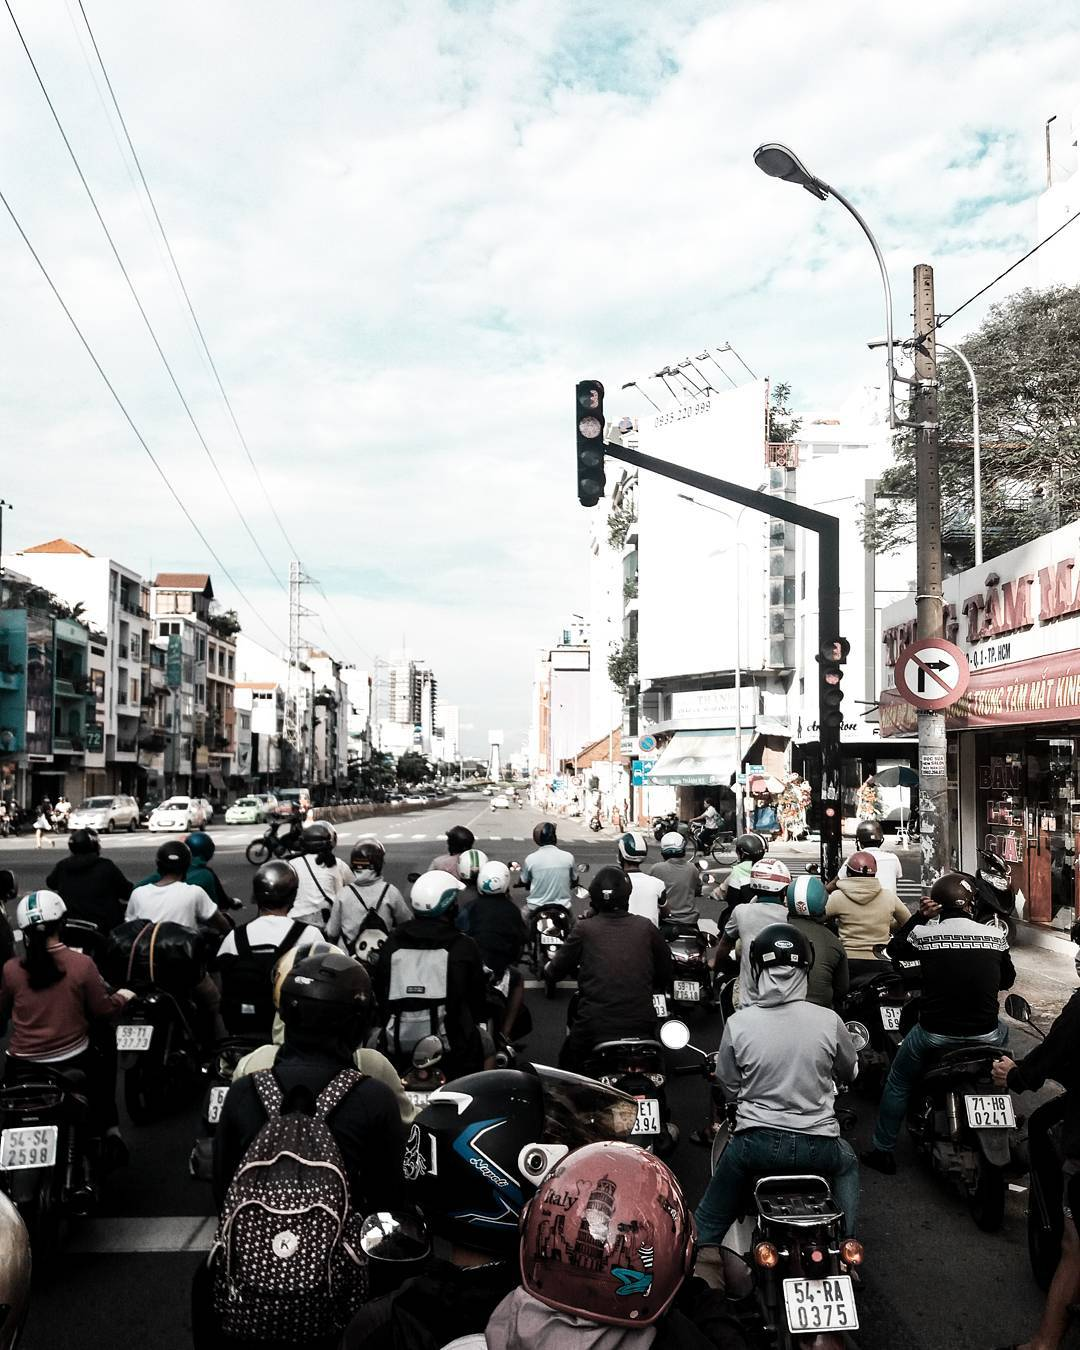 Daily Scenes in Ho Chi Minh City